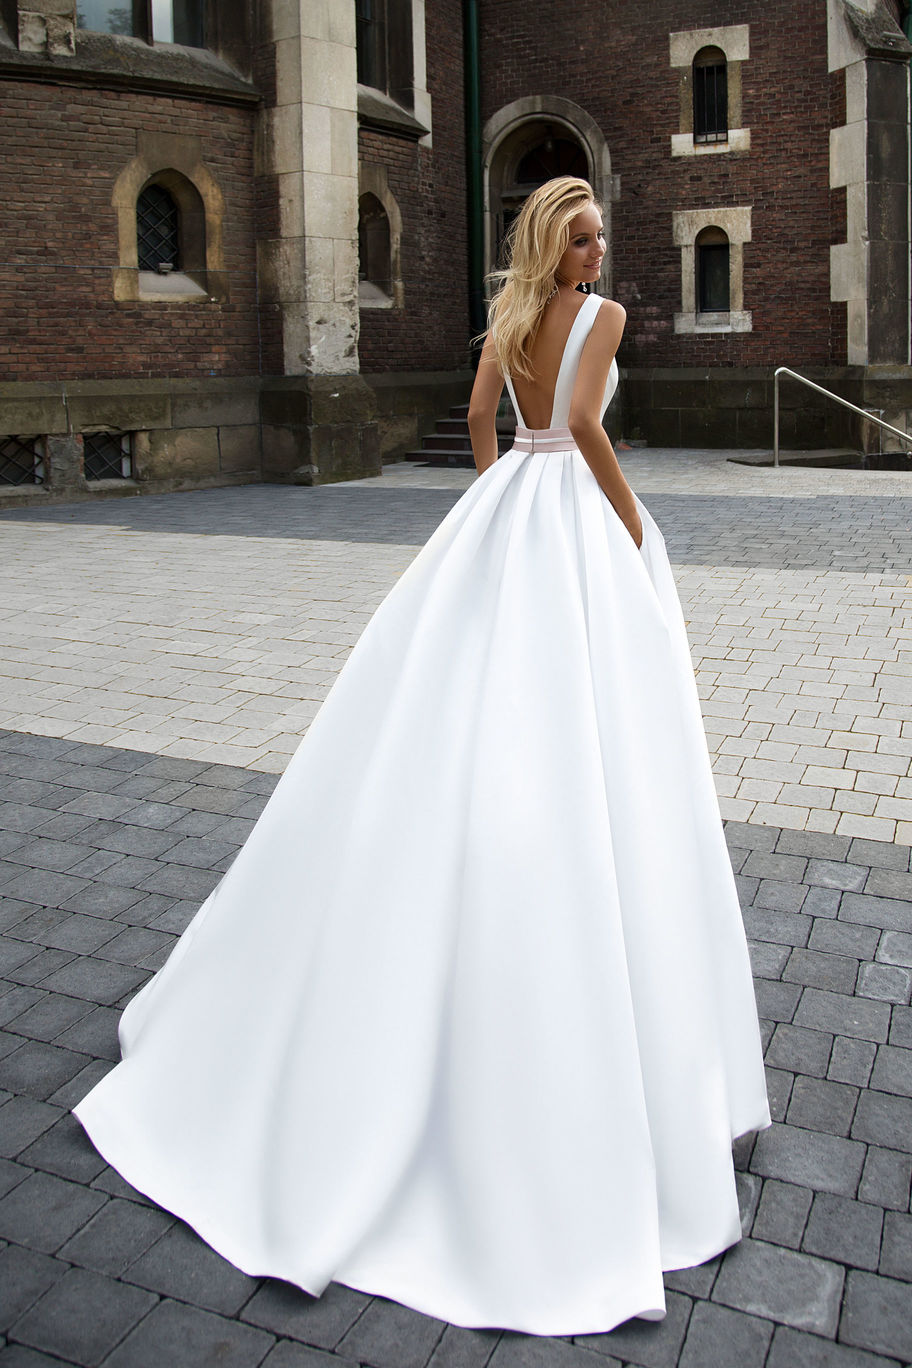 Dresses Long for wedding pictures, How to collection an art build